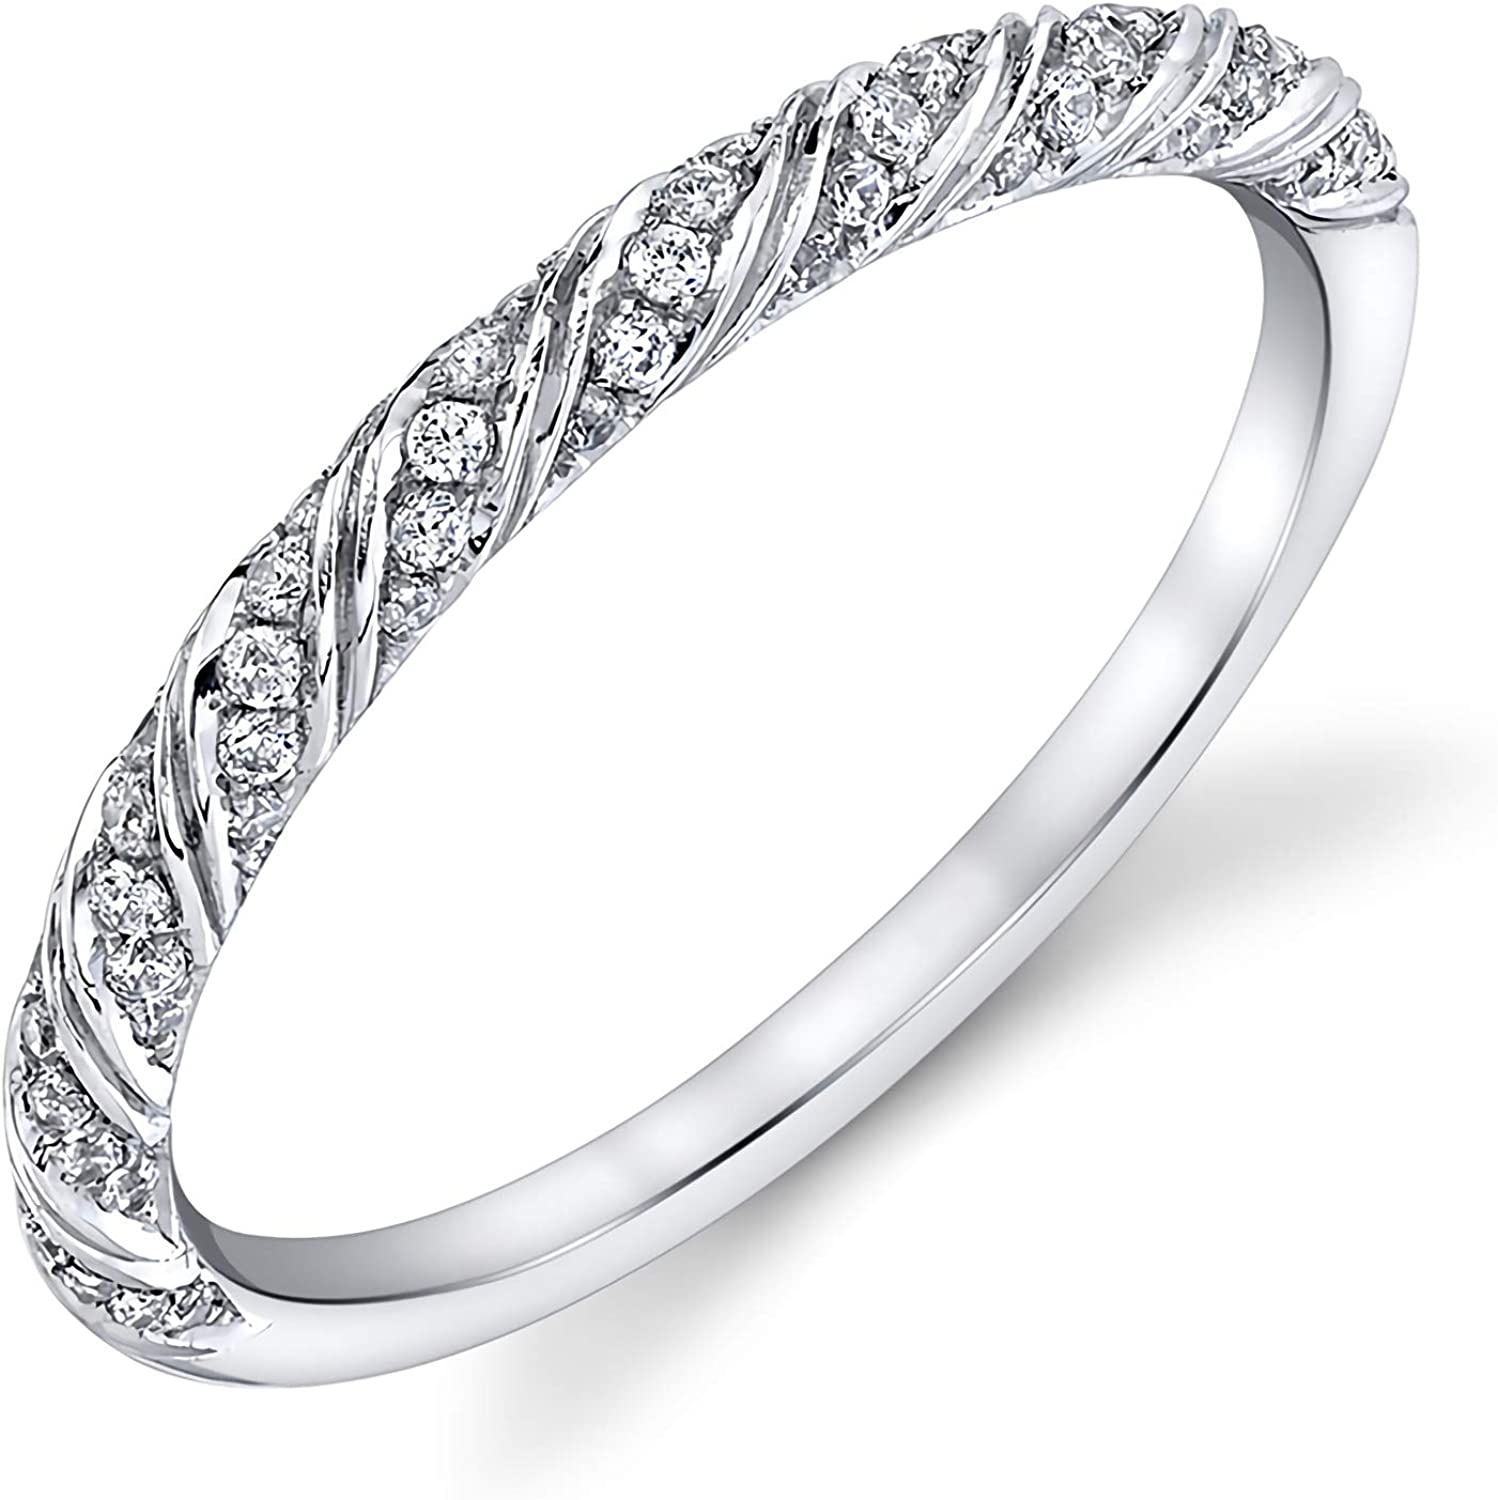 1 5 carats Wedding Max 81% OFF bands Max 59% OFF for women Gold 10K 18K w 14K Moissanite